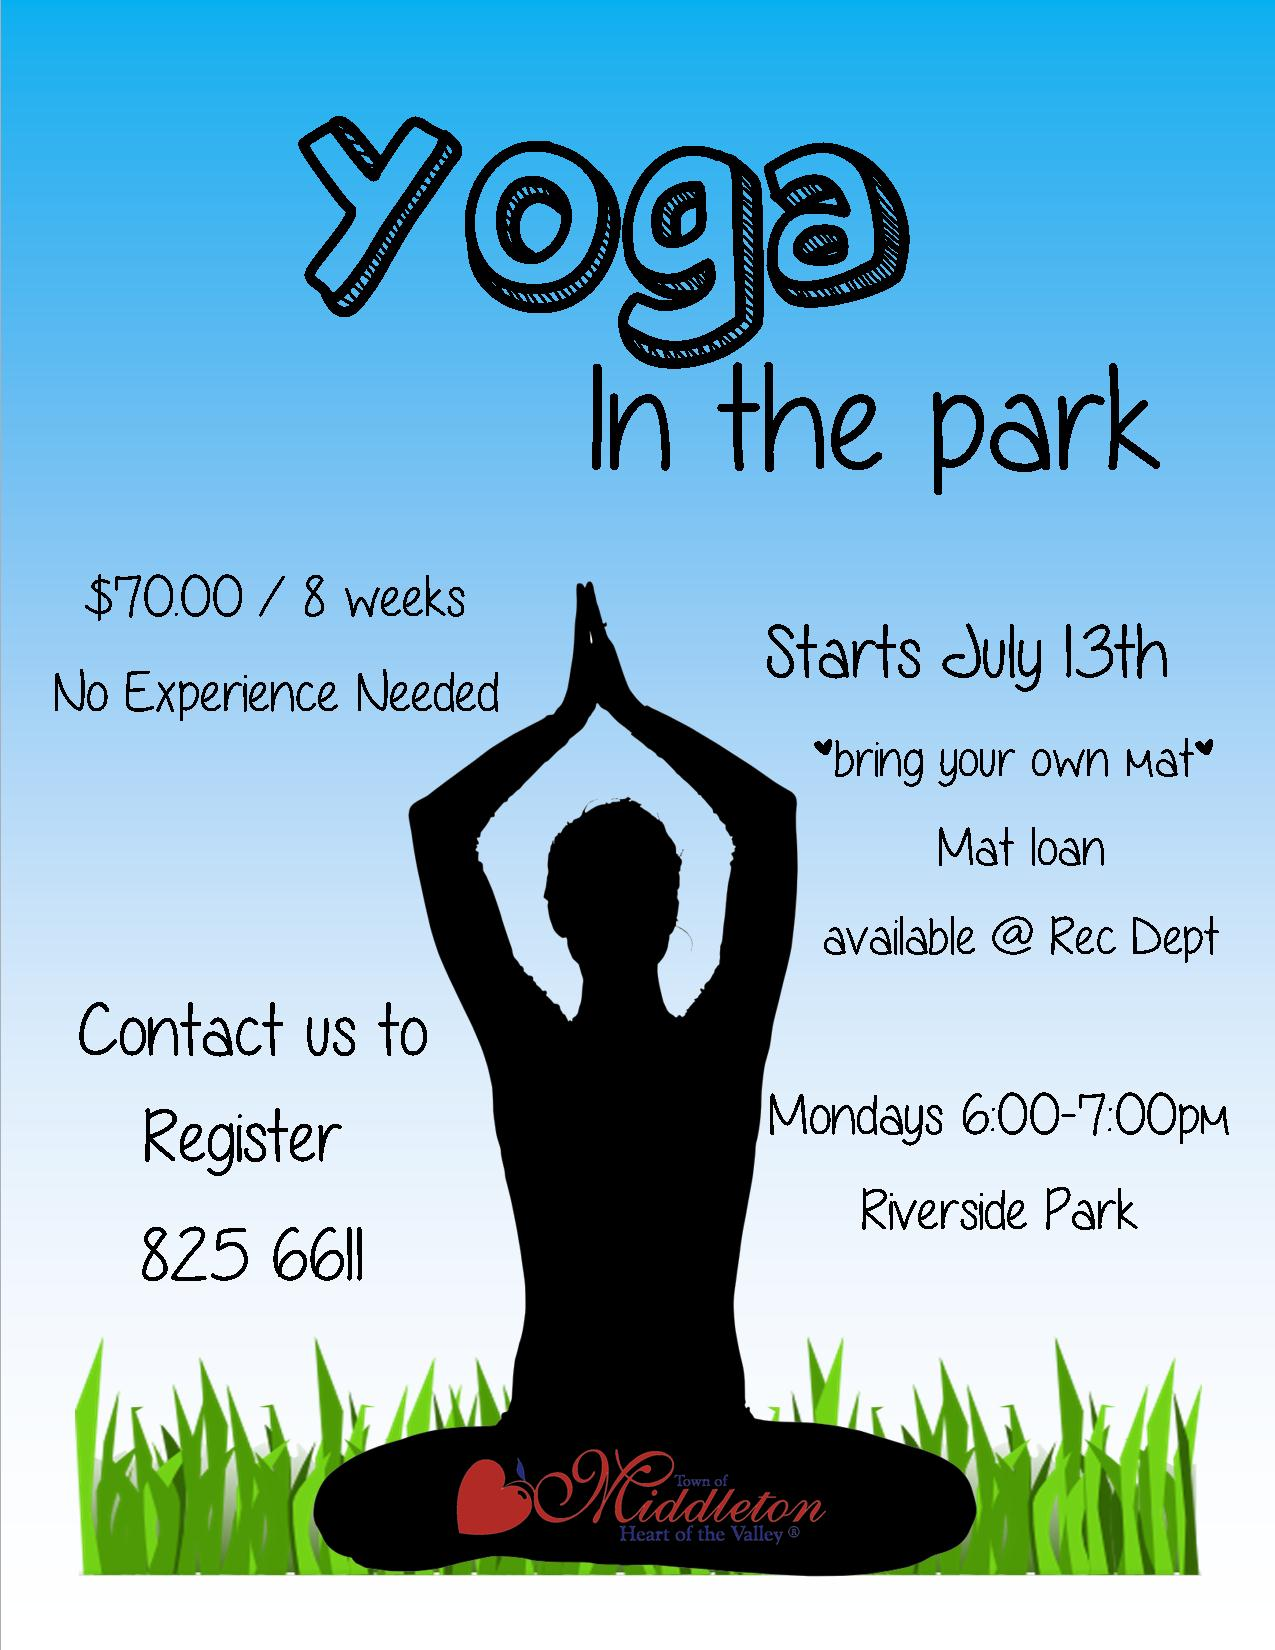 Yoga in the park 2015 Good